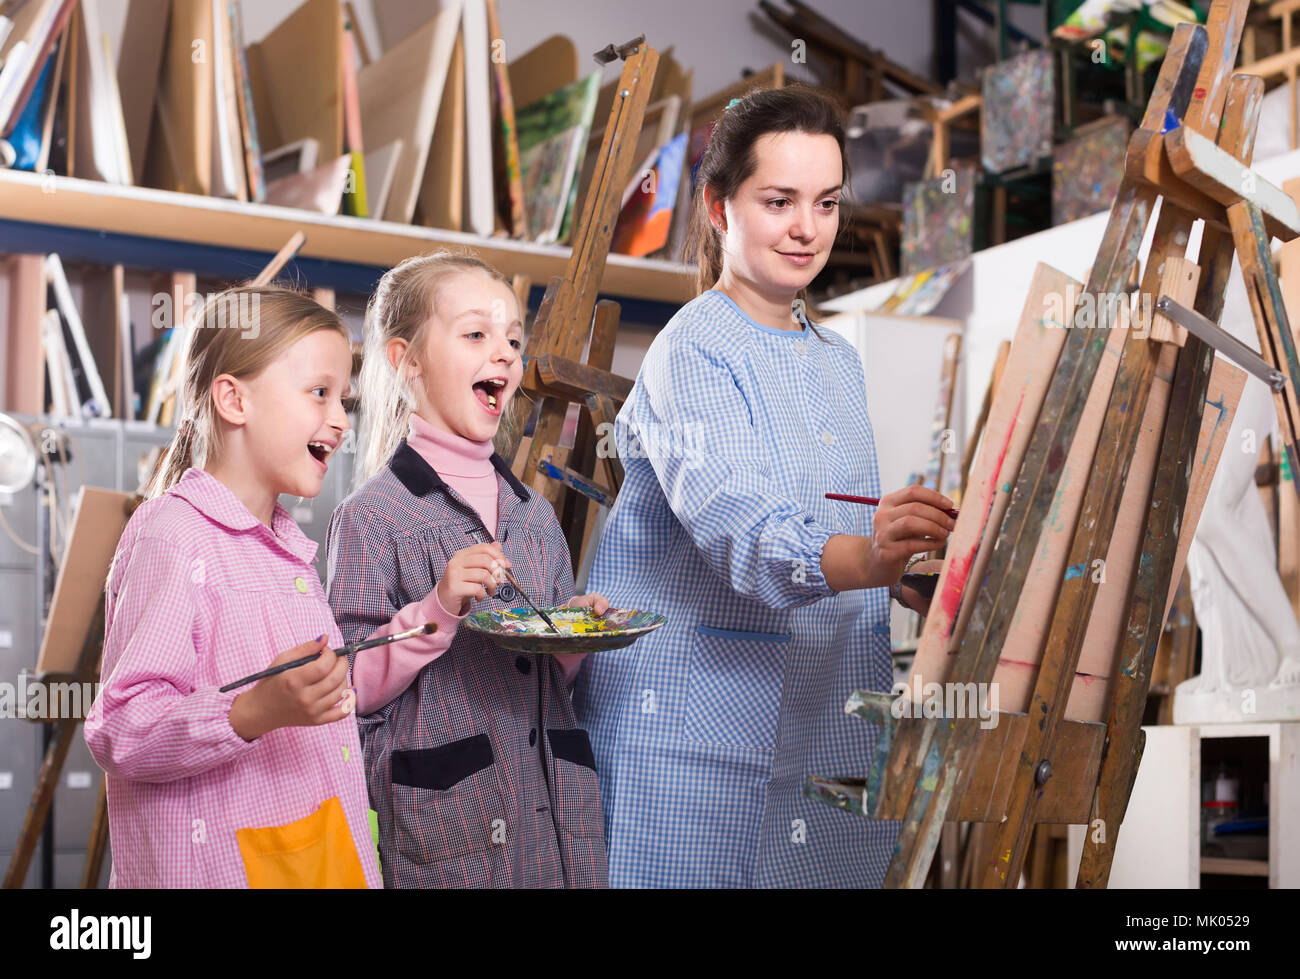 skillful young spanish woman teacher showing her skills during painting class at art studio - Stock Image